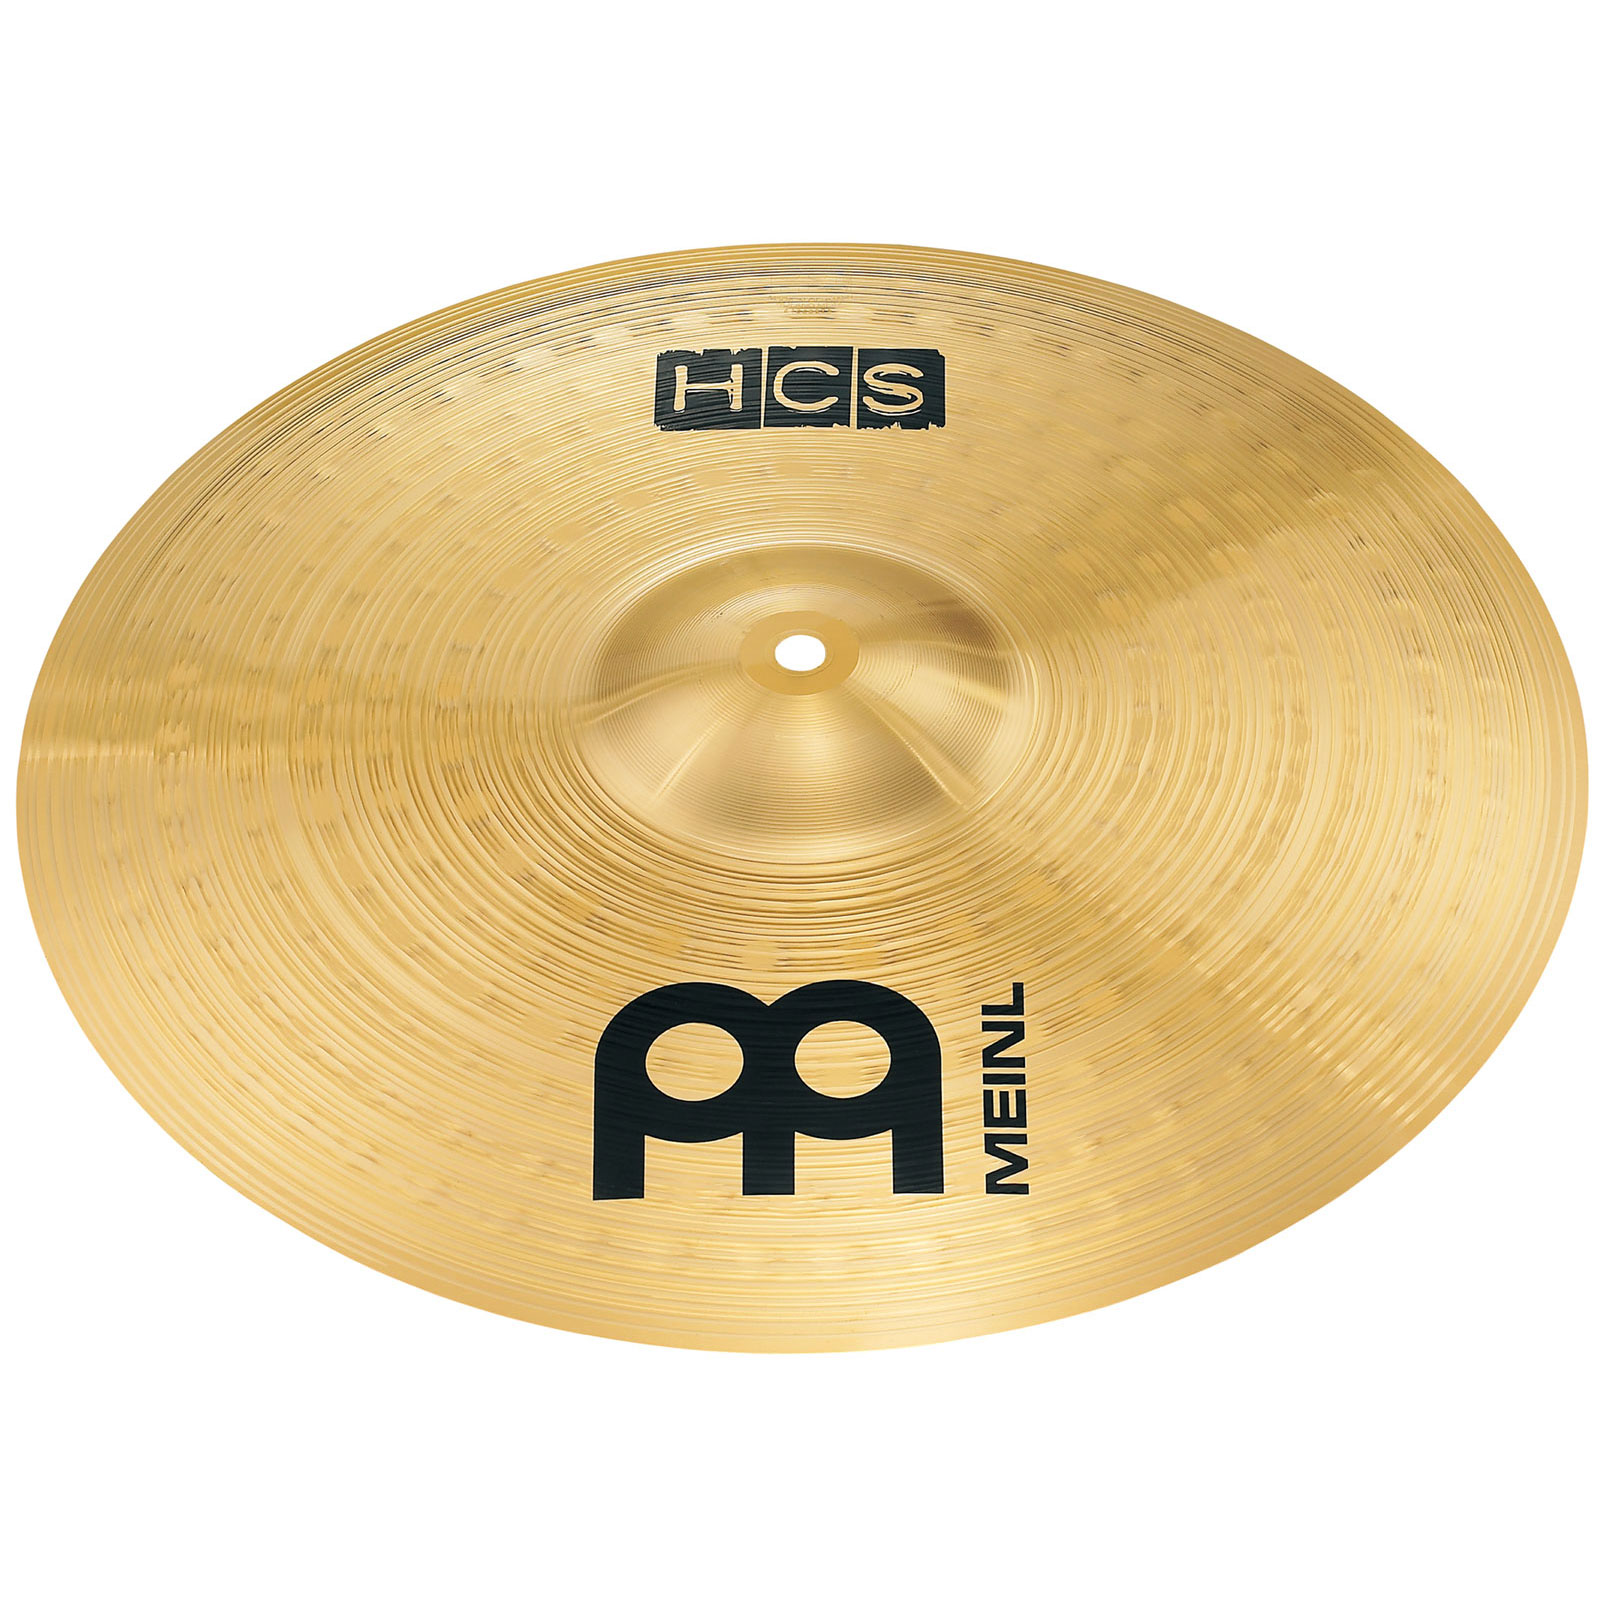 "Meinl 14"" HCS China Cymbal"